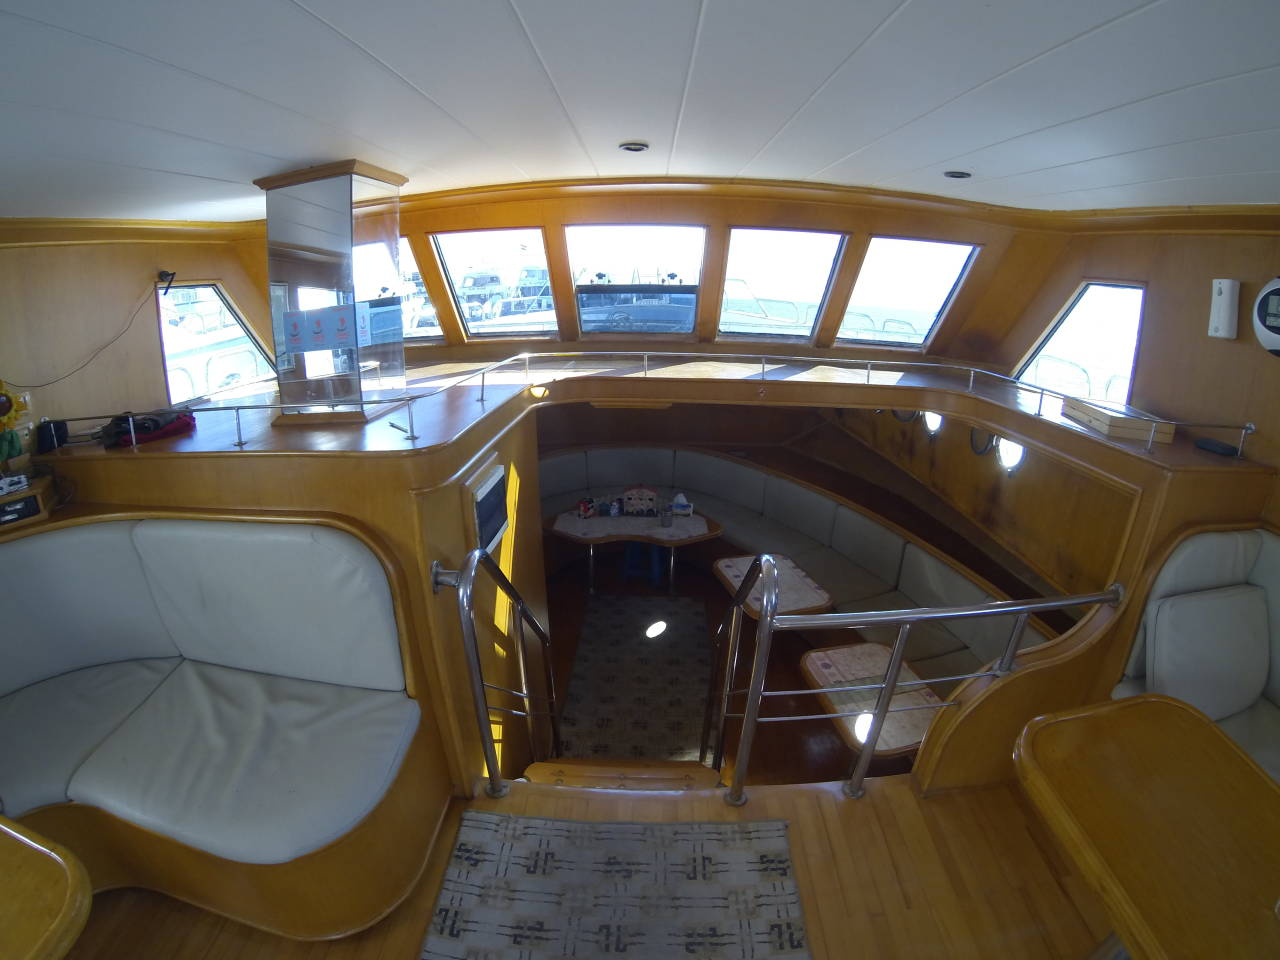 Salon im Privatboot